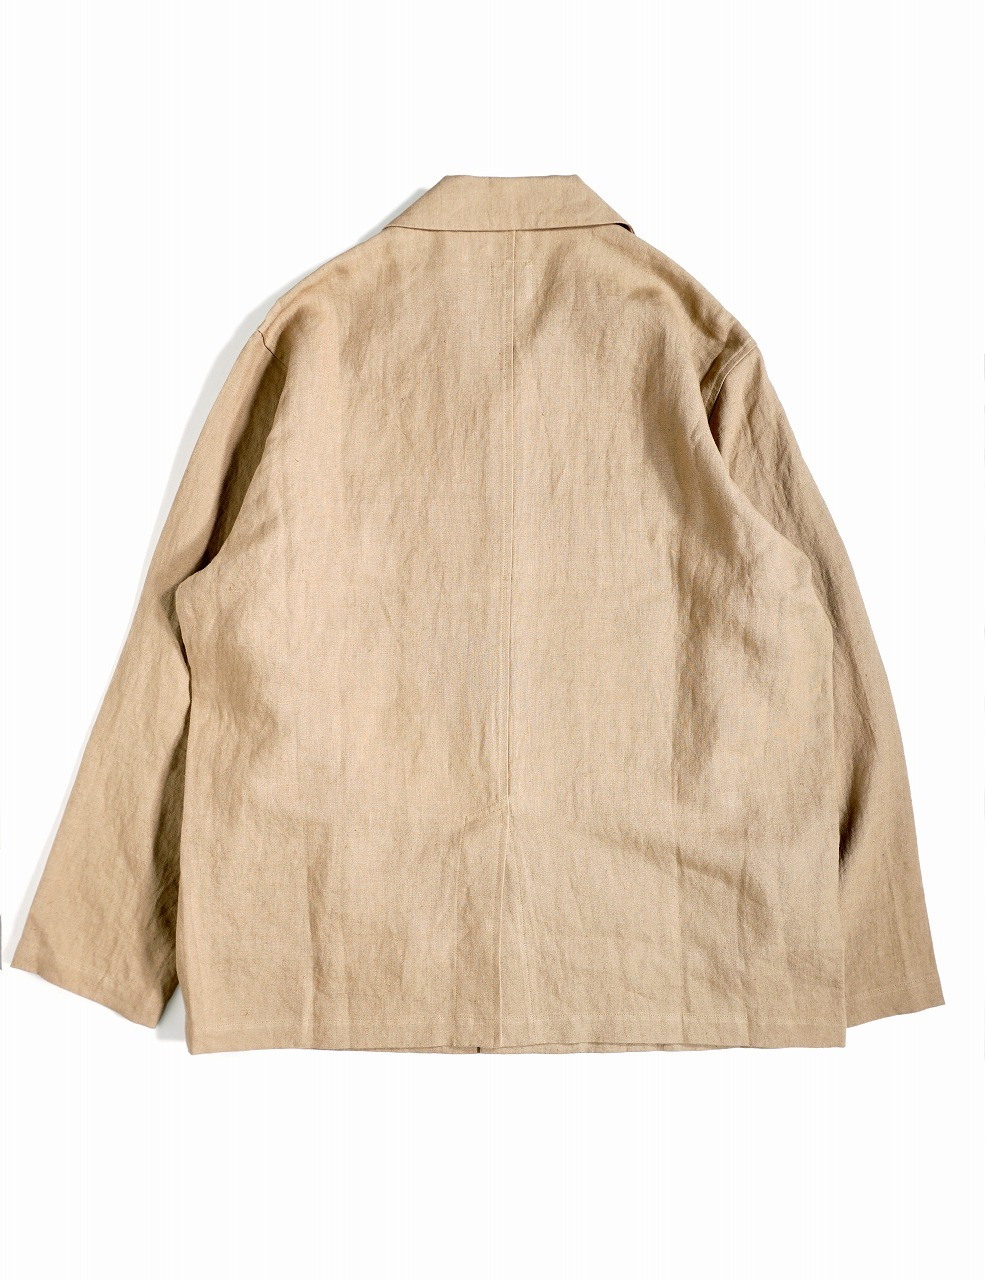 Linen Canvas Jacket